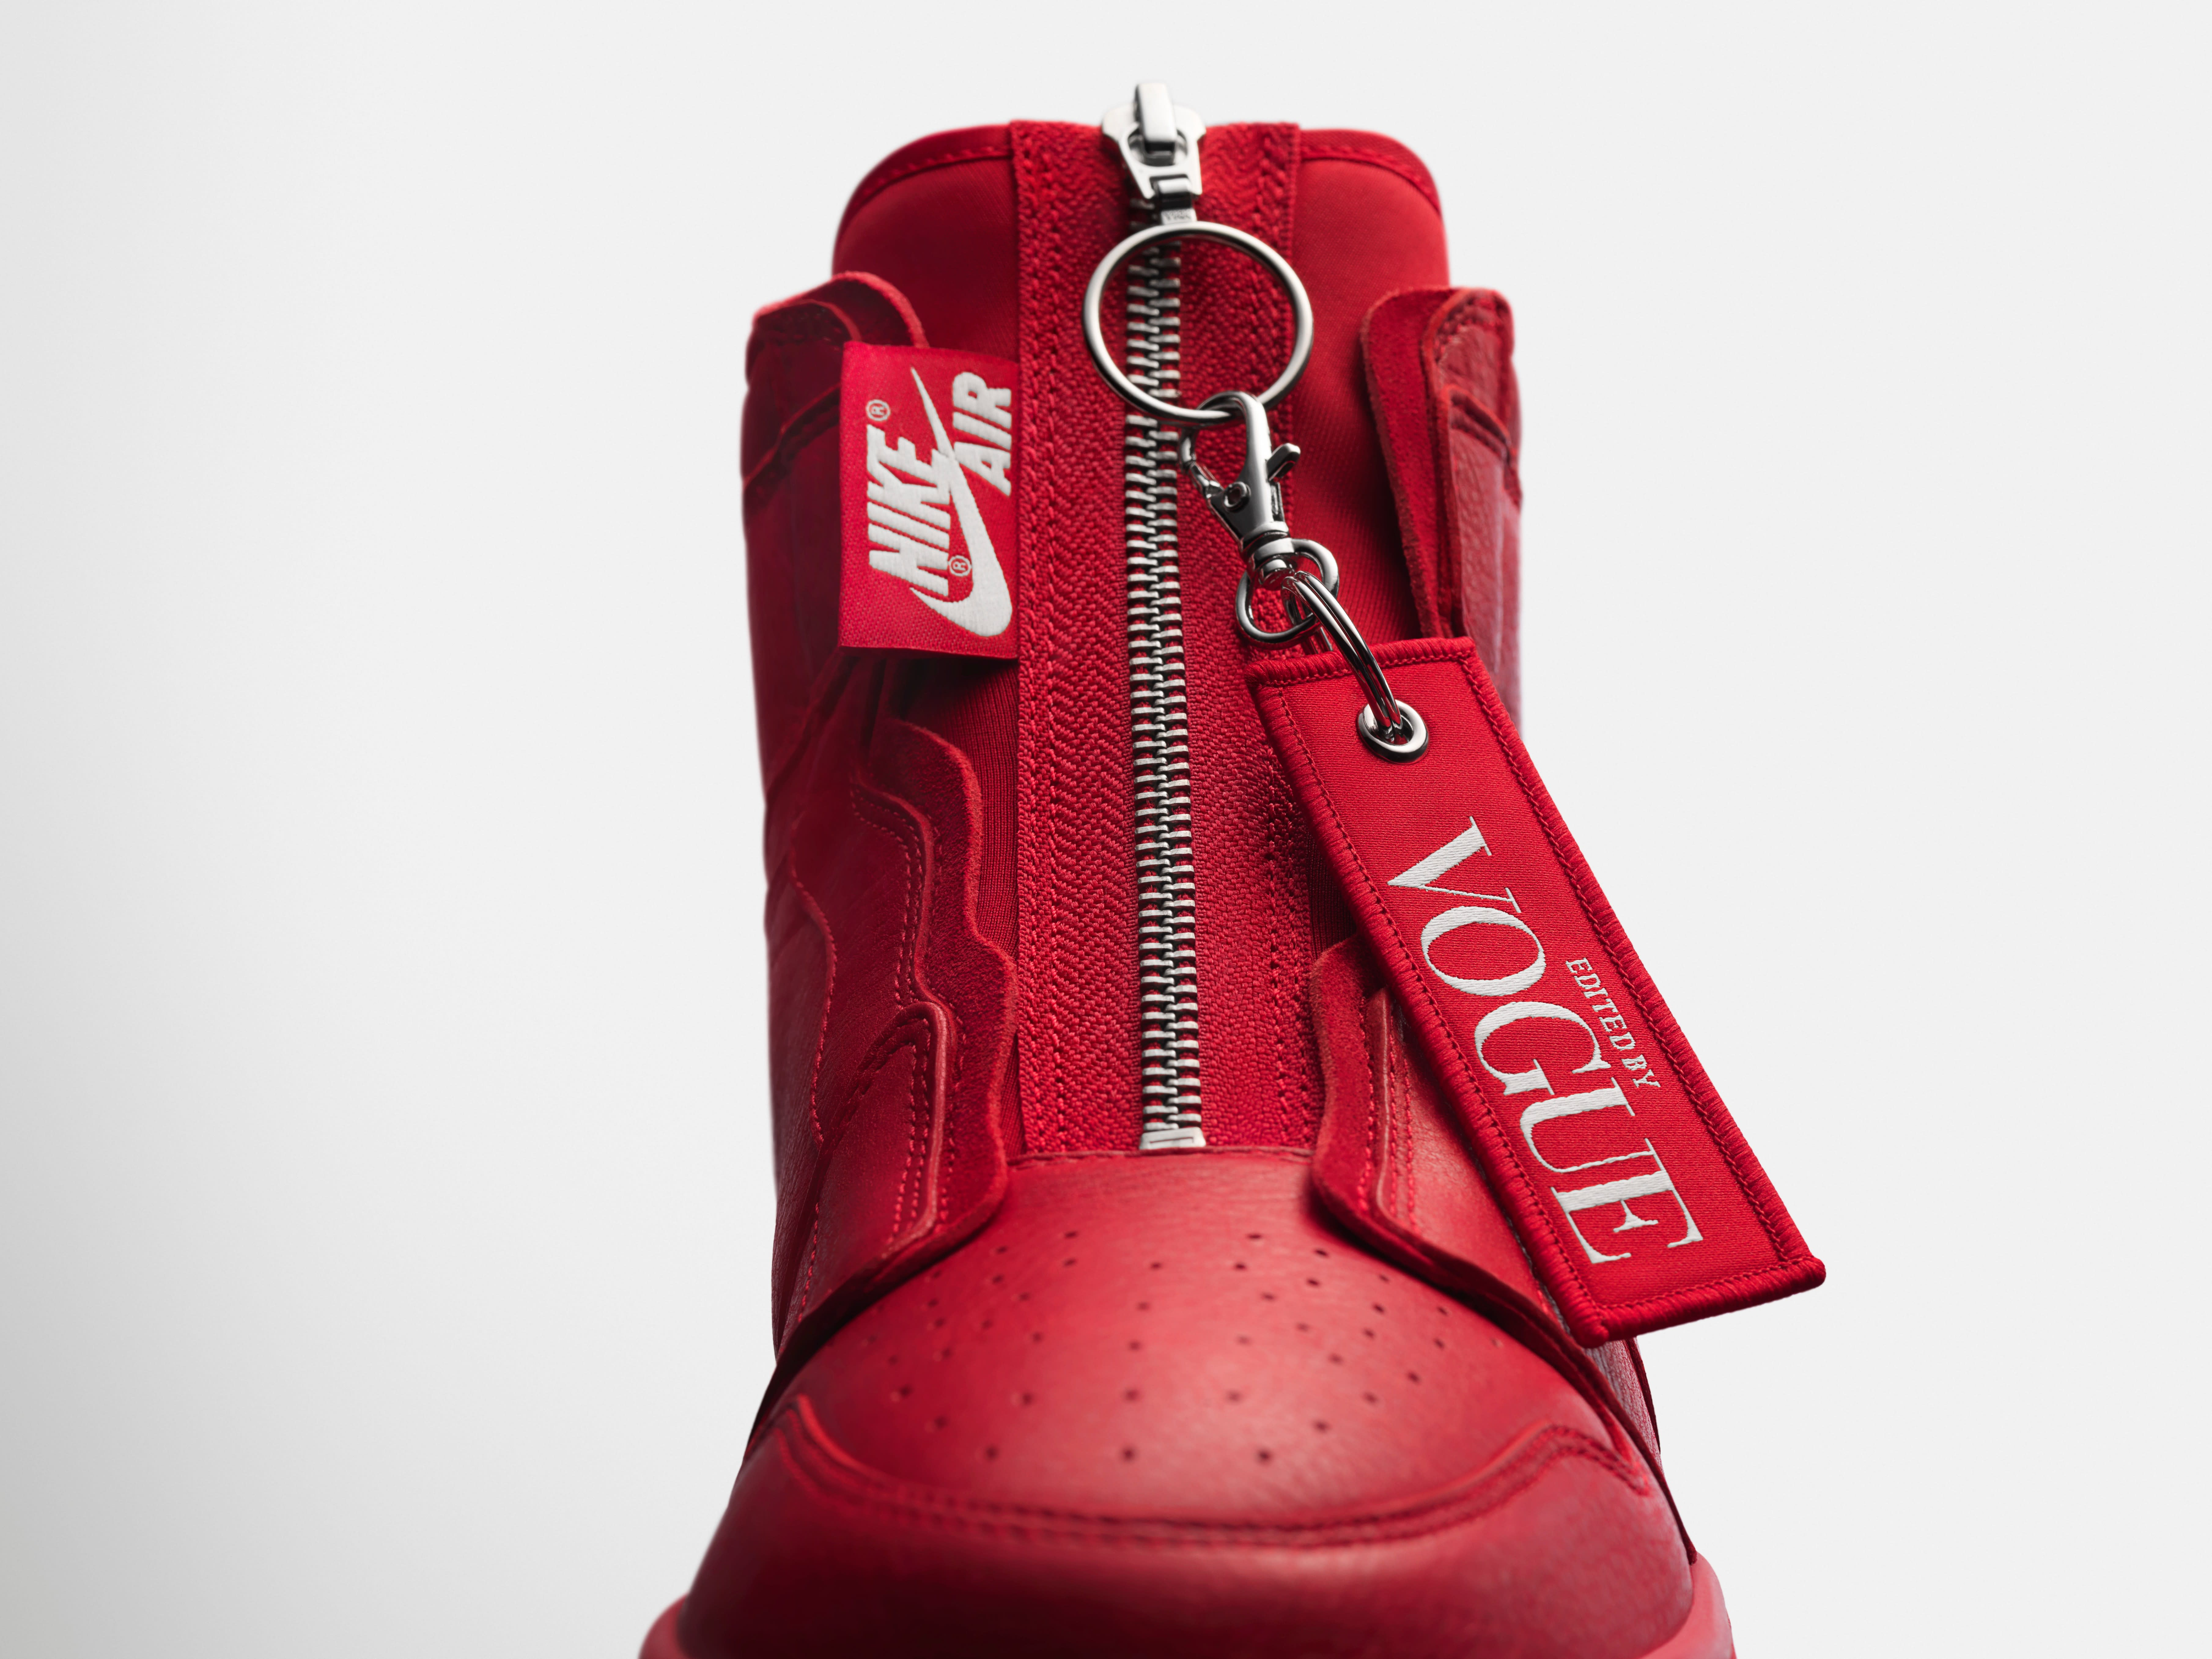 Vogue x Air Jordan 1 Zip AWOK 'University Red' (Tongue)